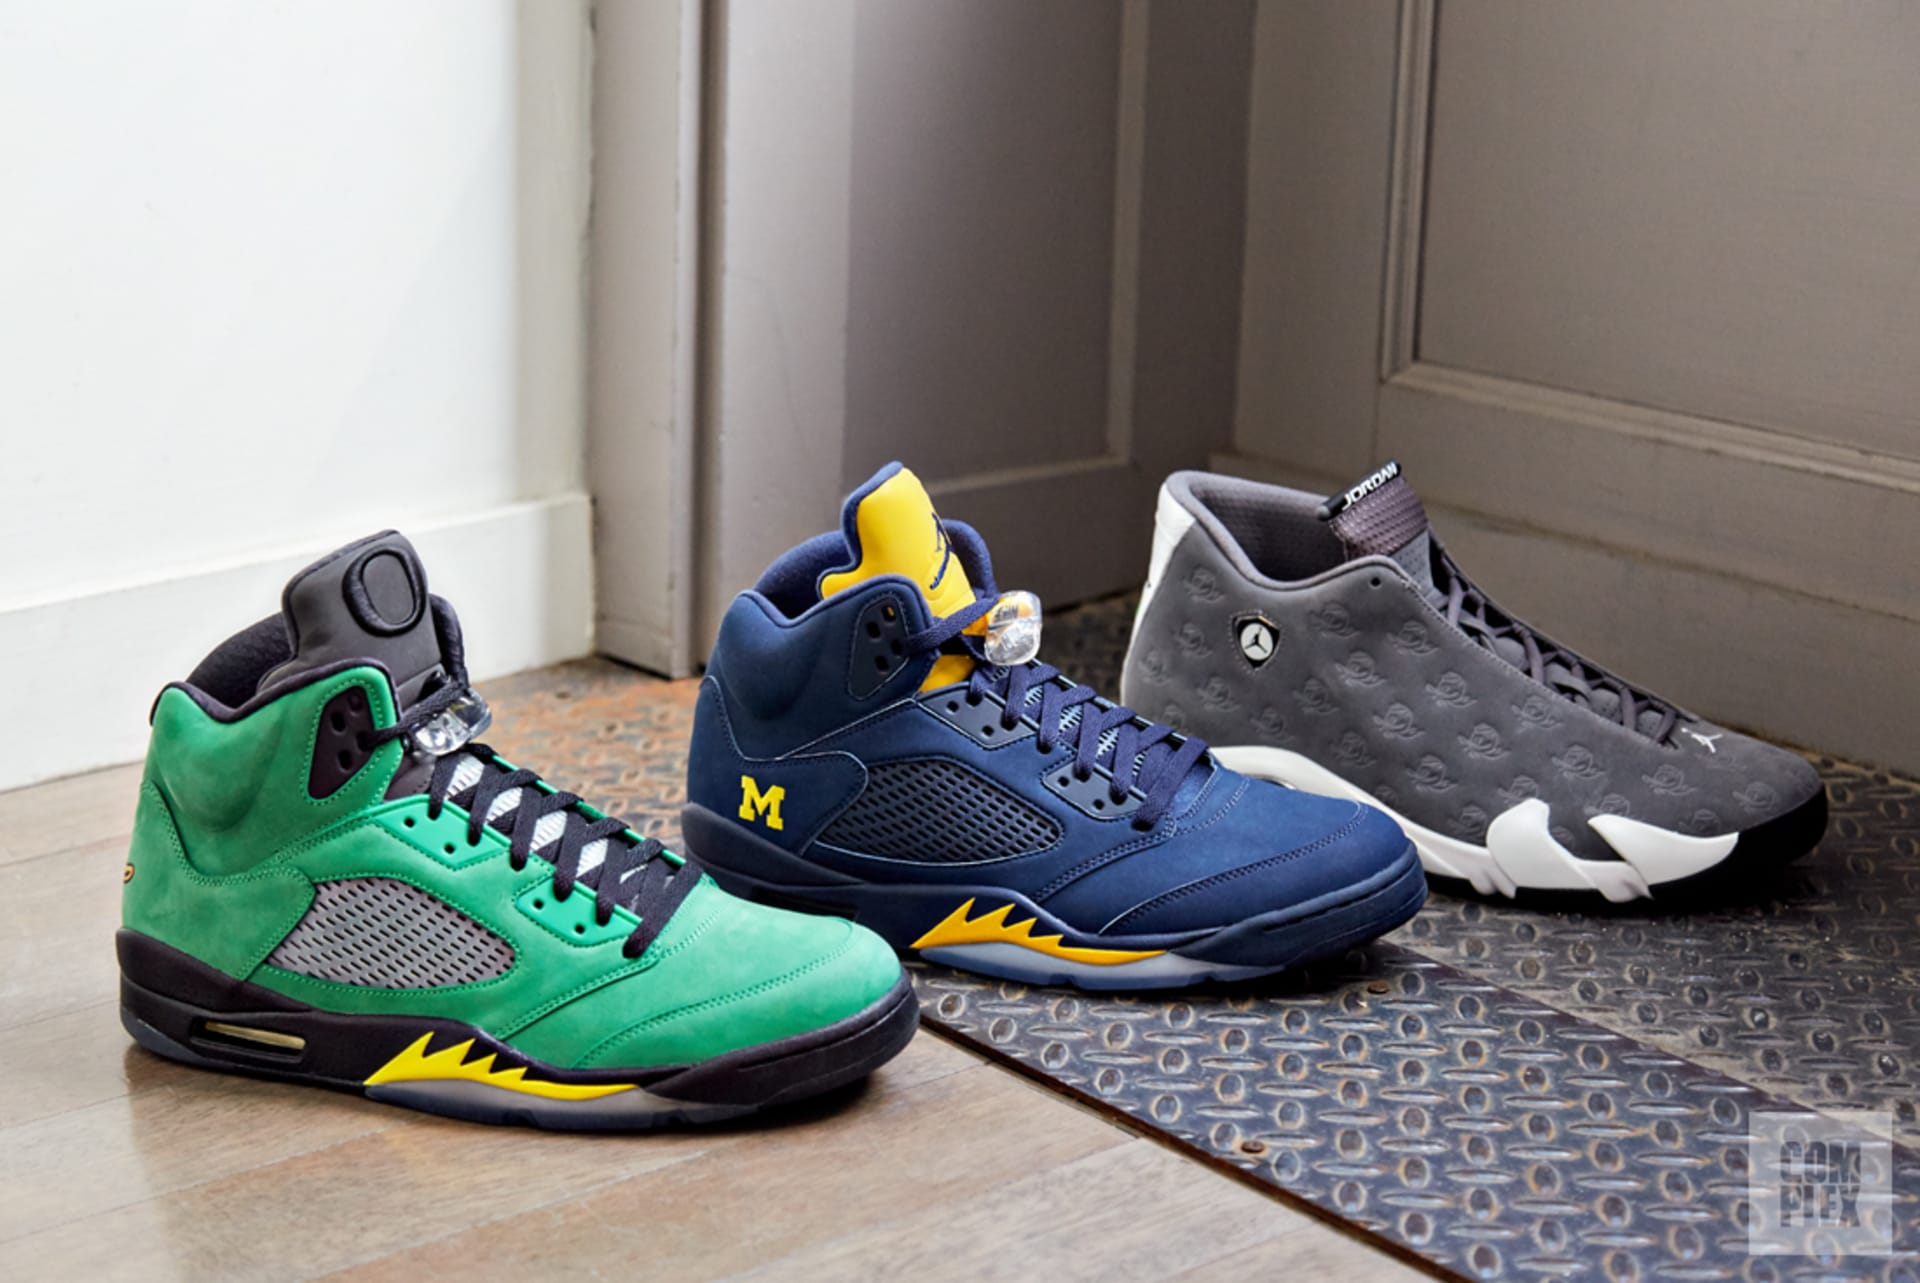 21eaa0aea5ad Air Jordan PEs made for the University of Oregon and Michigan. Sneakers  courtesy of Stadium Goods. Image via Complex Original David Cabrera